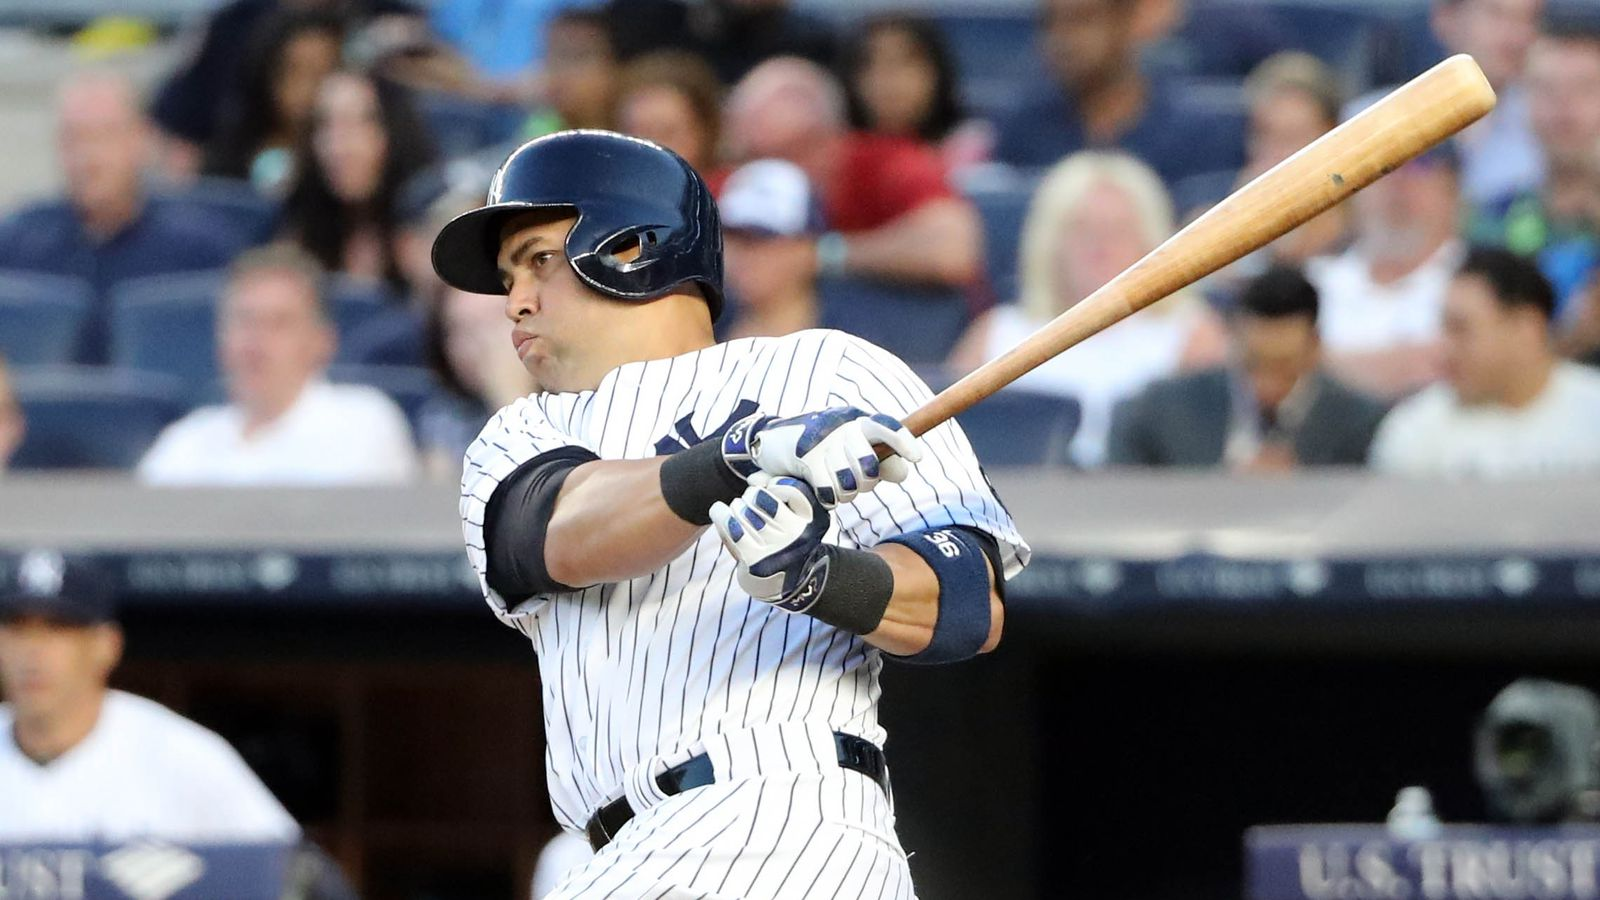 Royals have discussed trade for Carlos Beltran - Royals Review